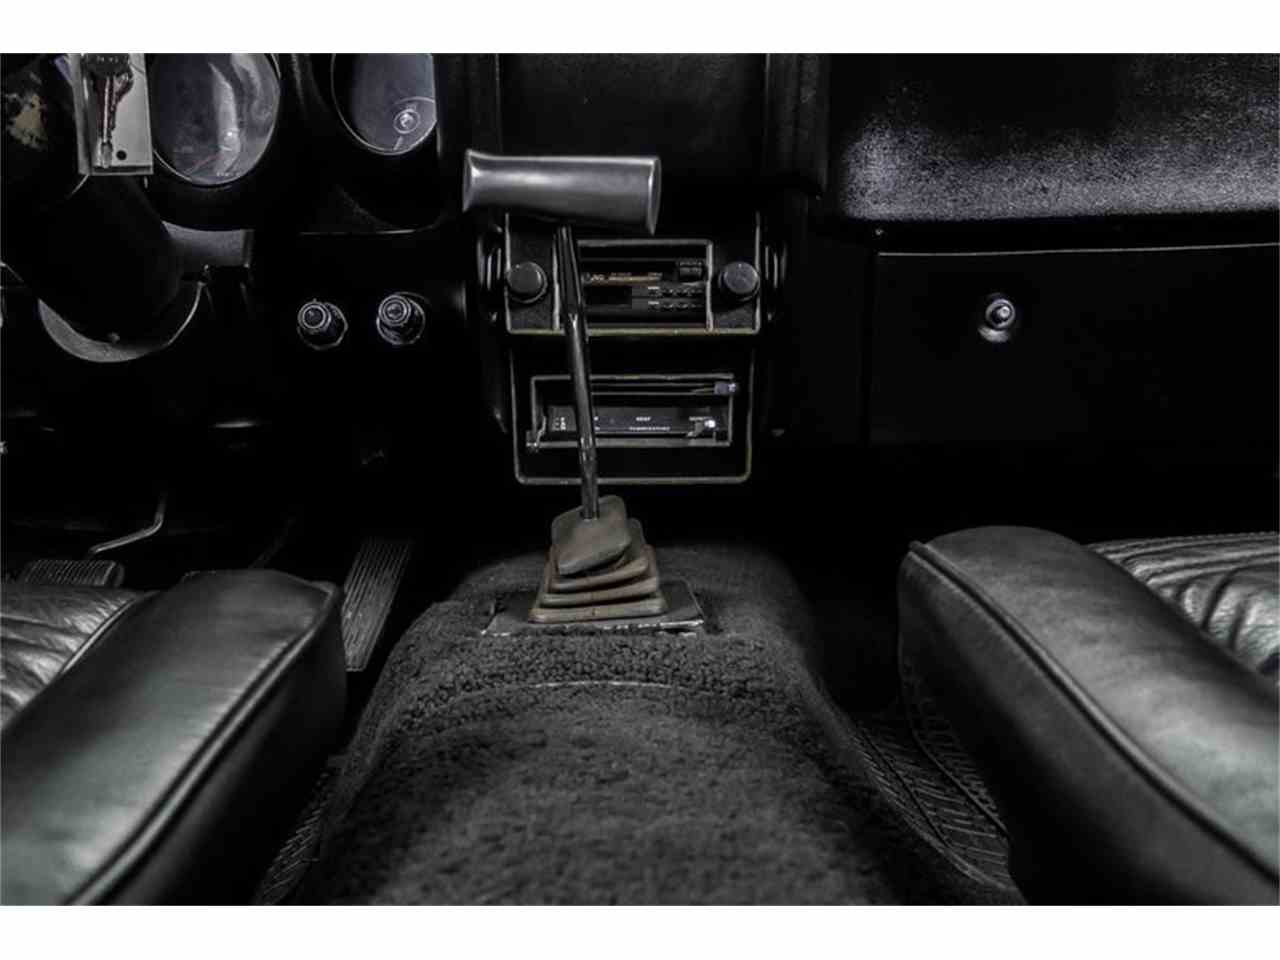 Large Picture of Classic '70 Mustang - $89,900.00 - GR9E